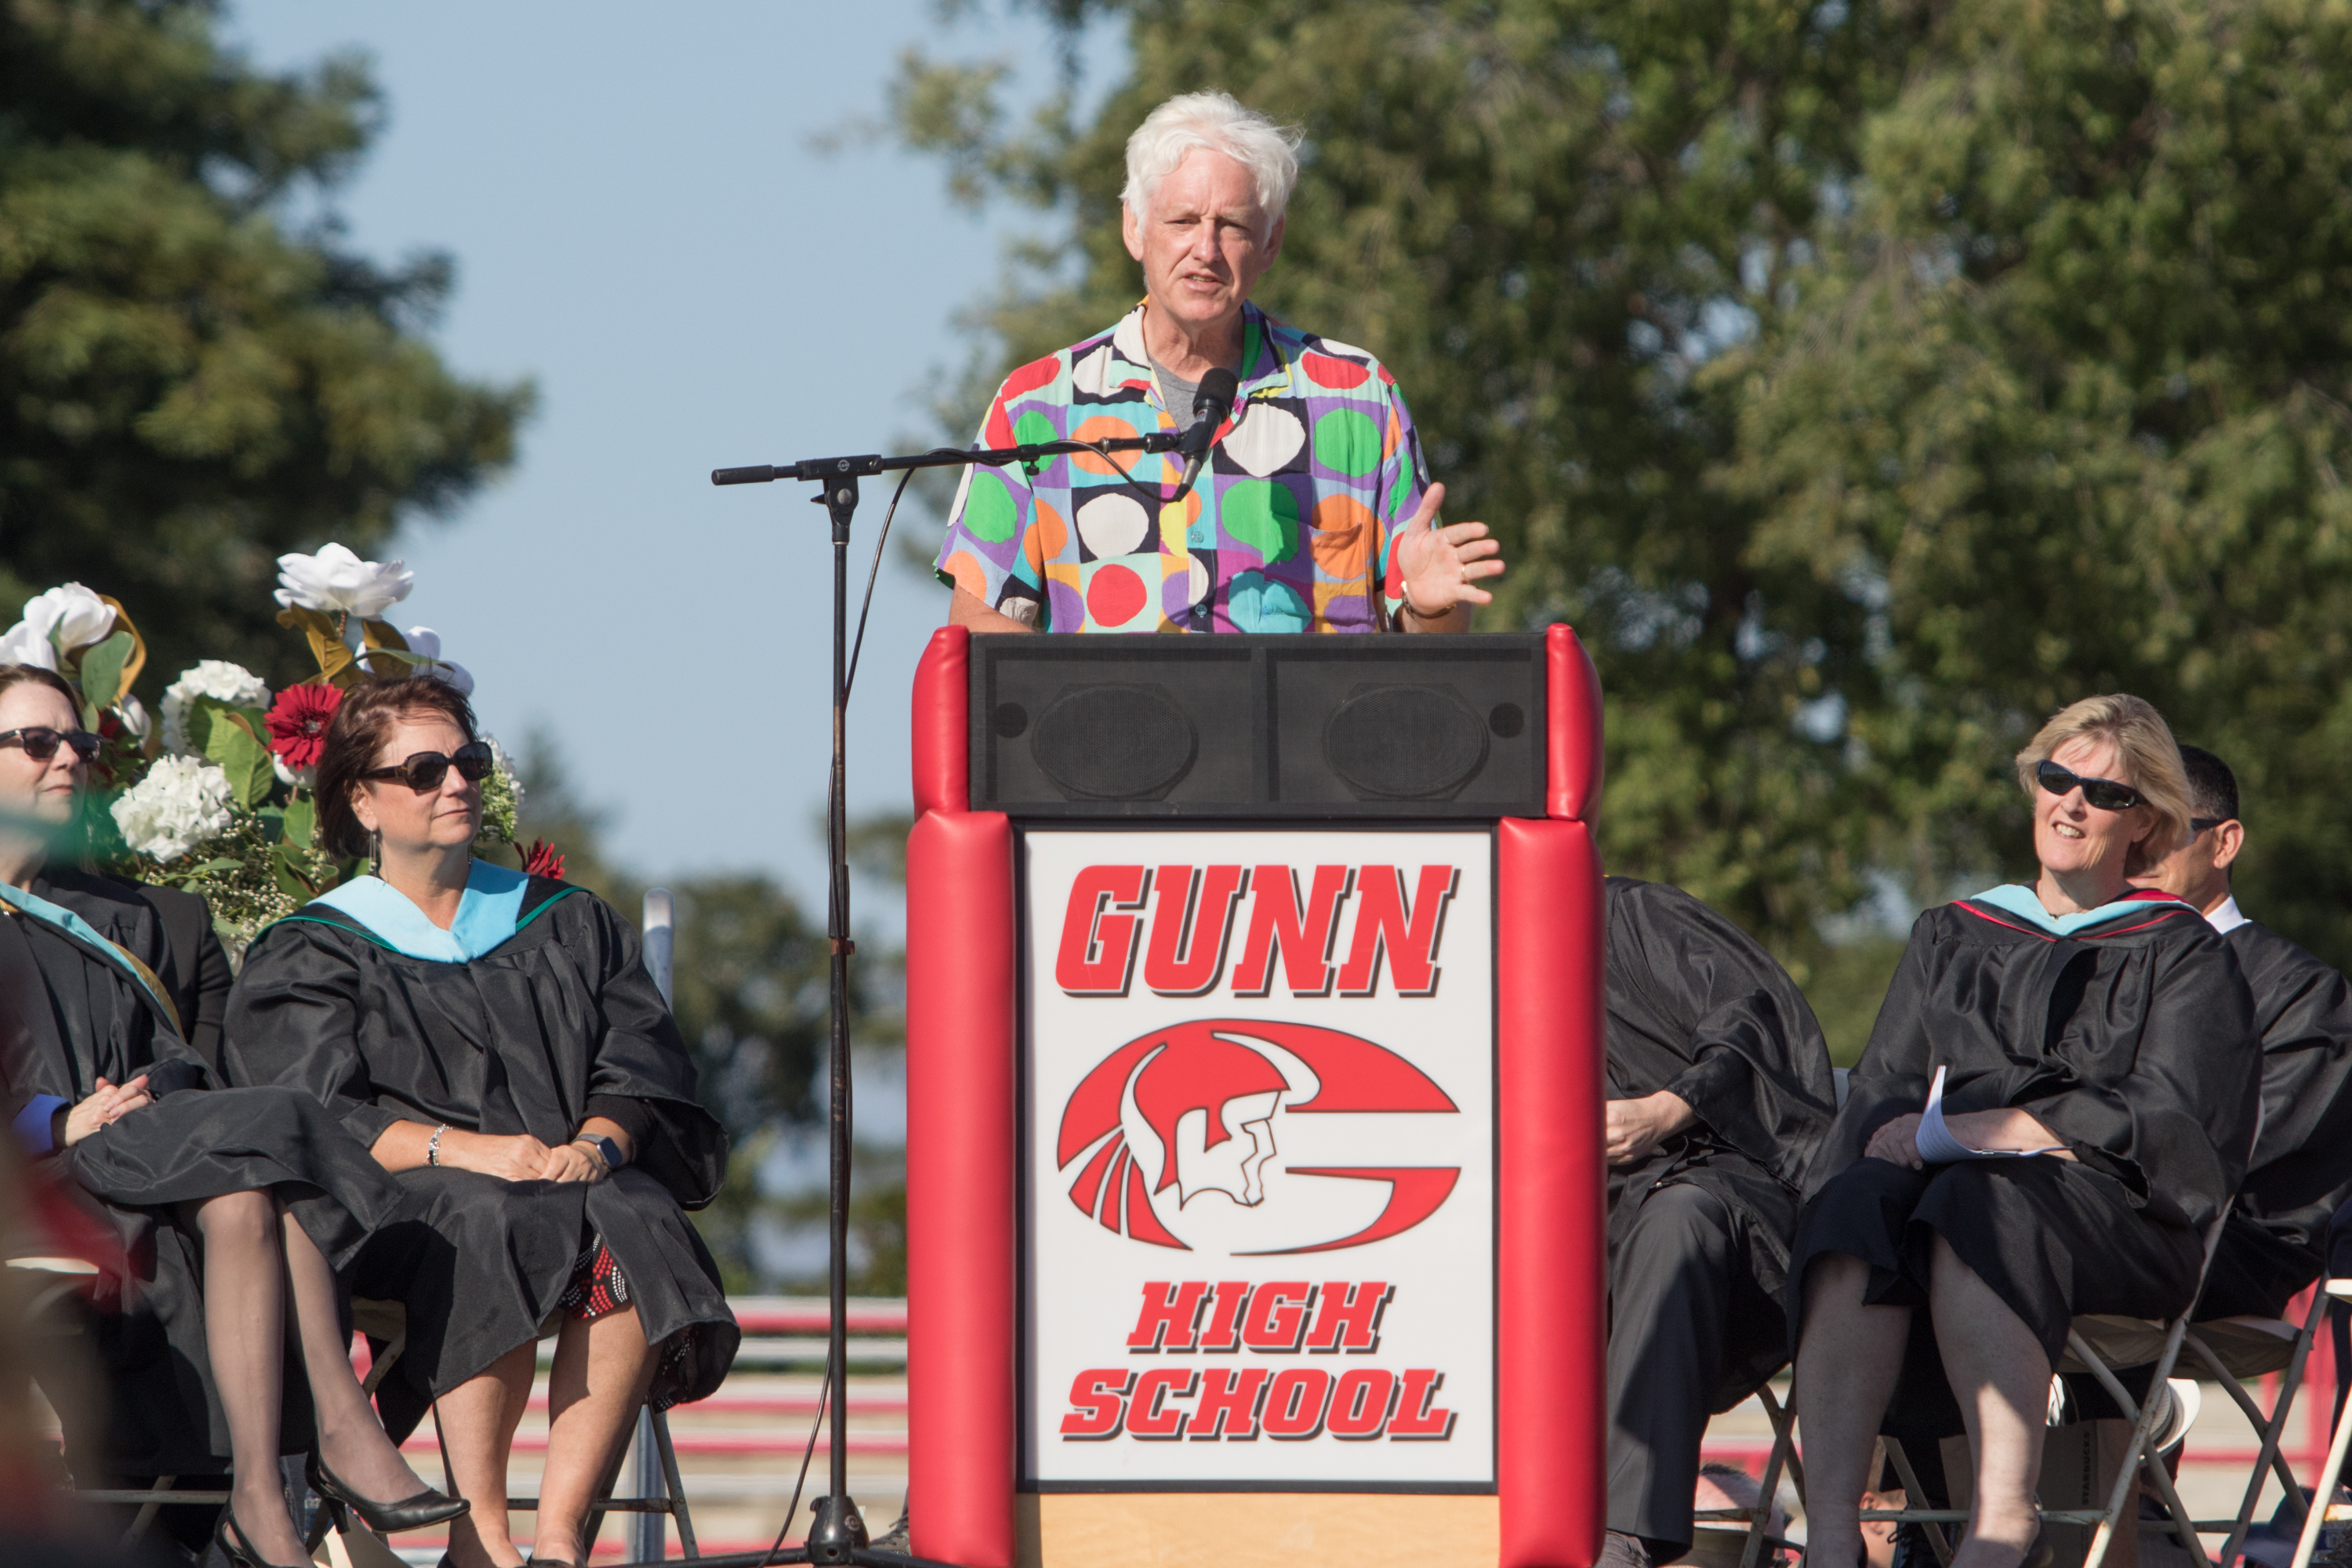 Dr. Peter Norvig, director of research at Google, challenged theGunn High School Class of 2019 to consume technology more consciously and ethically during commencement.